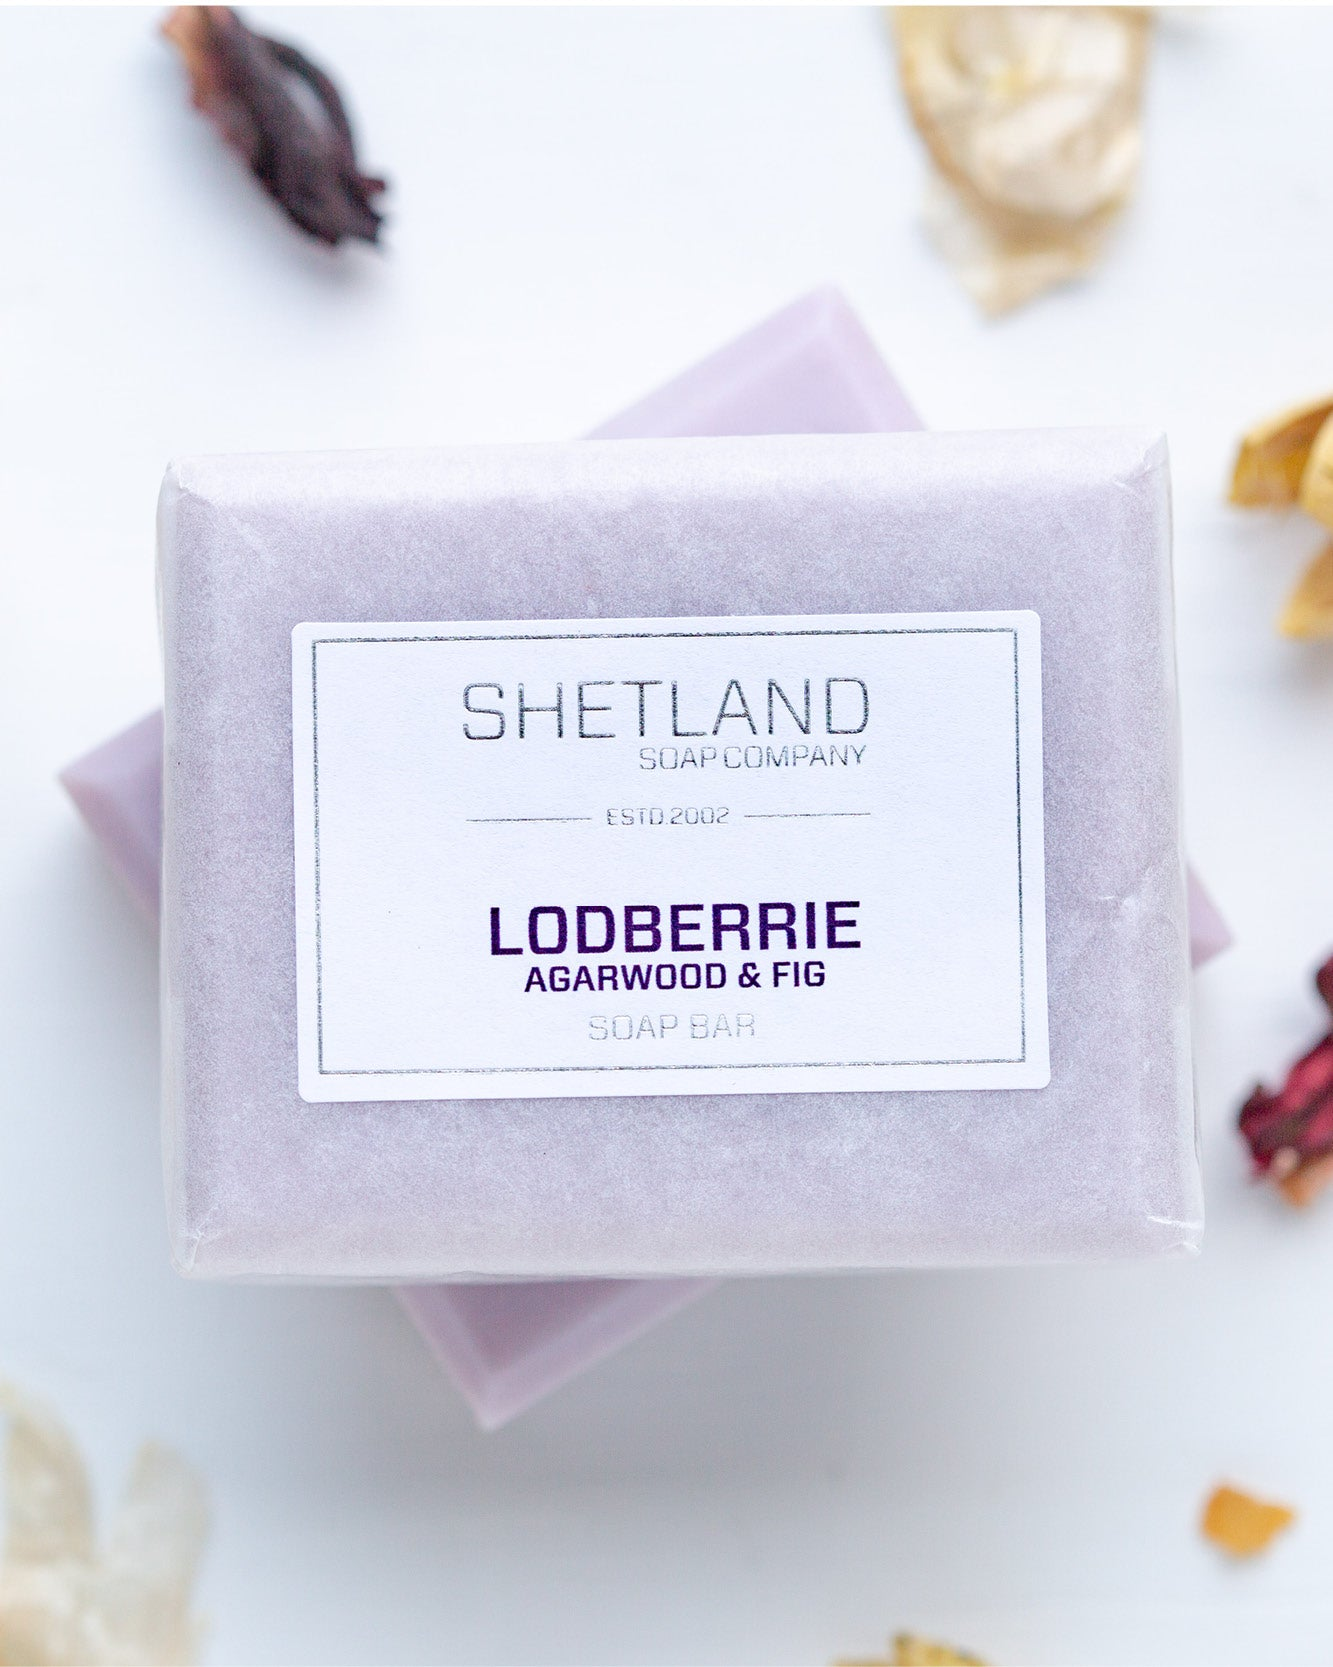 LODBERRIE SOAP BAR